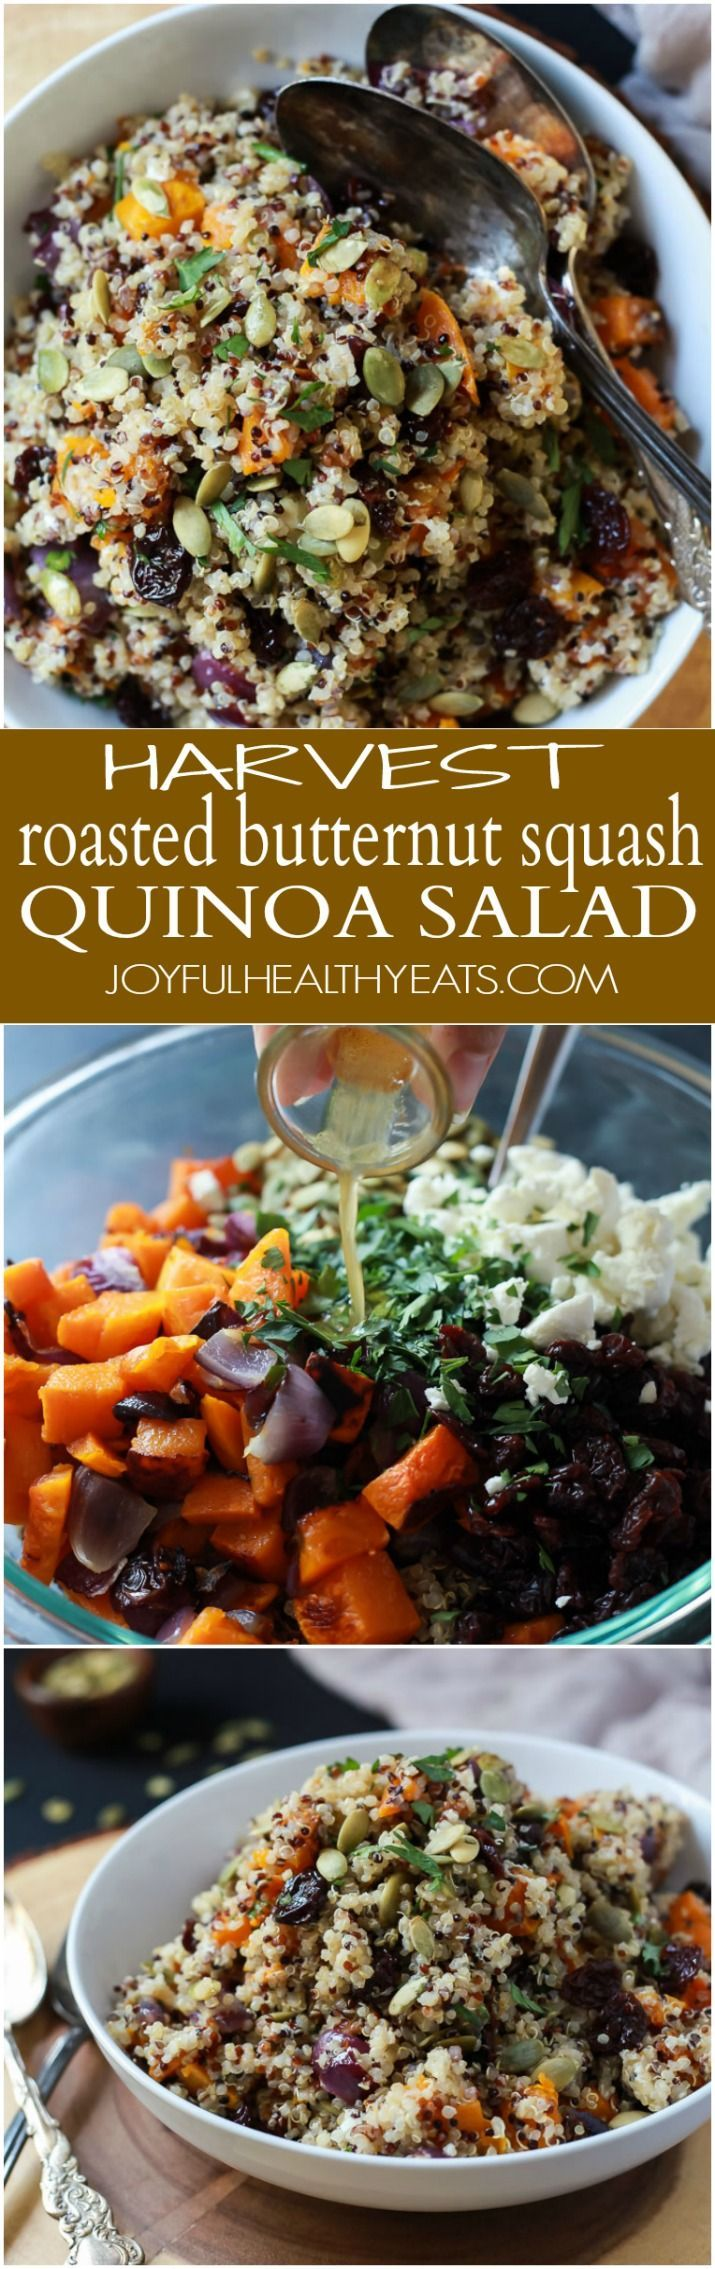 The BEST Roasted Butternut Squash Quinoa Salad with a secret creamy element and surprise spice that makes this salad dish pop with flavor. This Quinoa Salad is a rock star gluten free vegetarian recipe you need on your table this fall. | http://joyfulhealthyeats.com #recipes